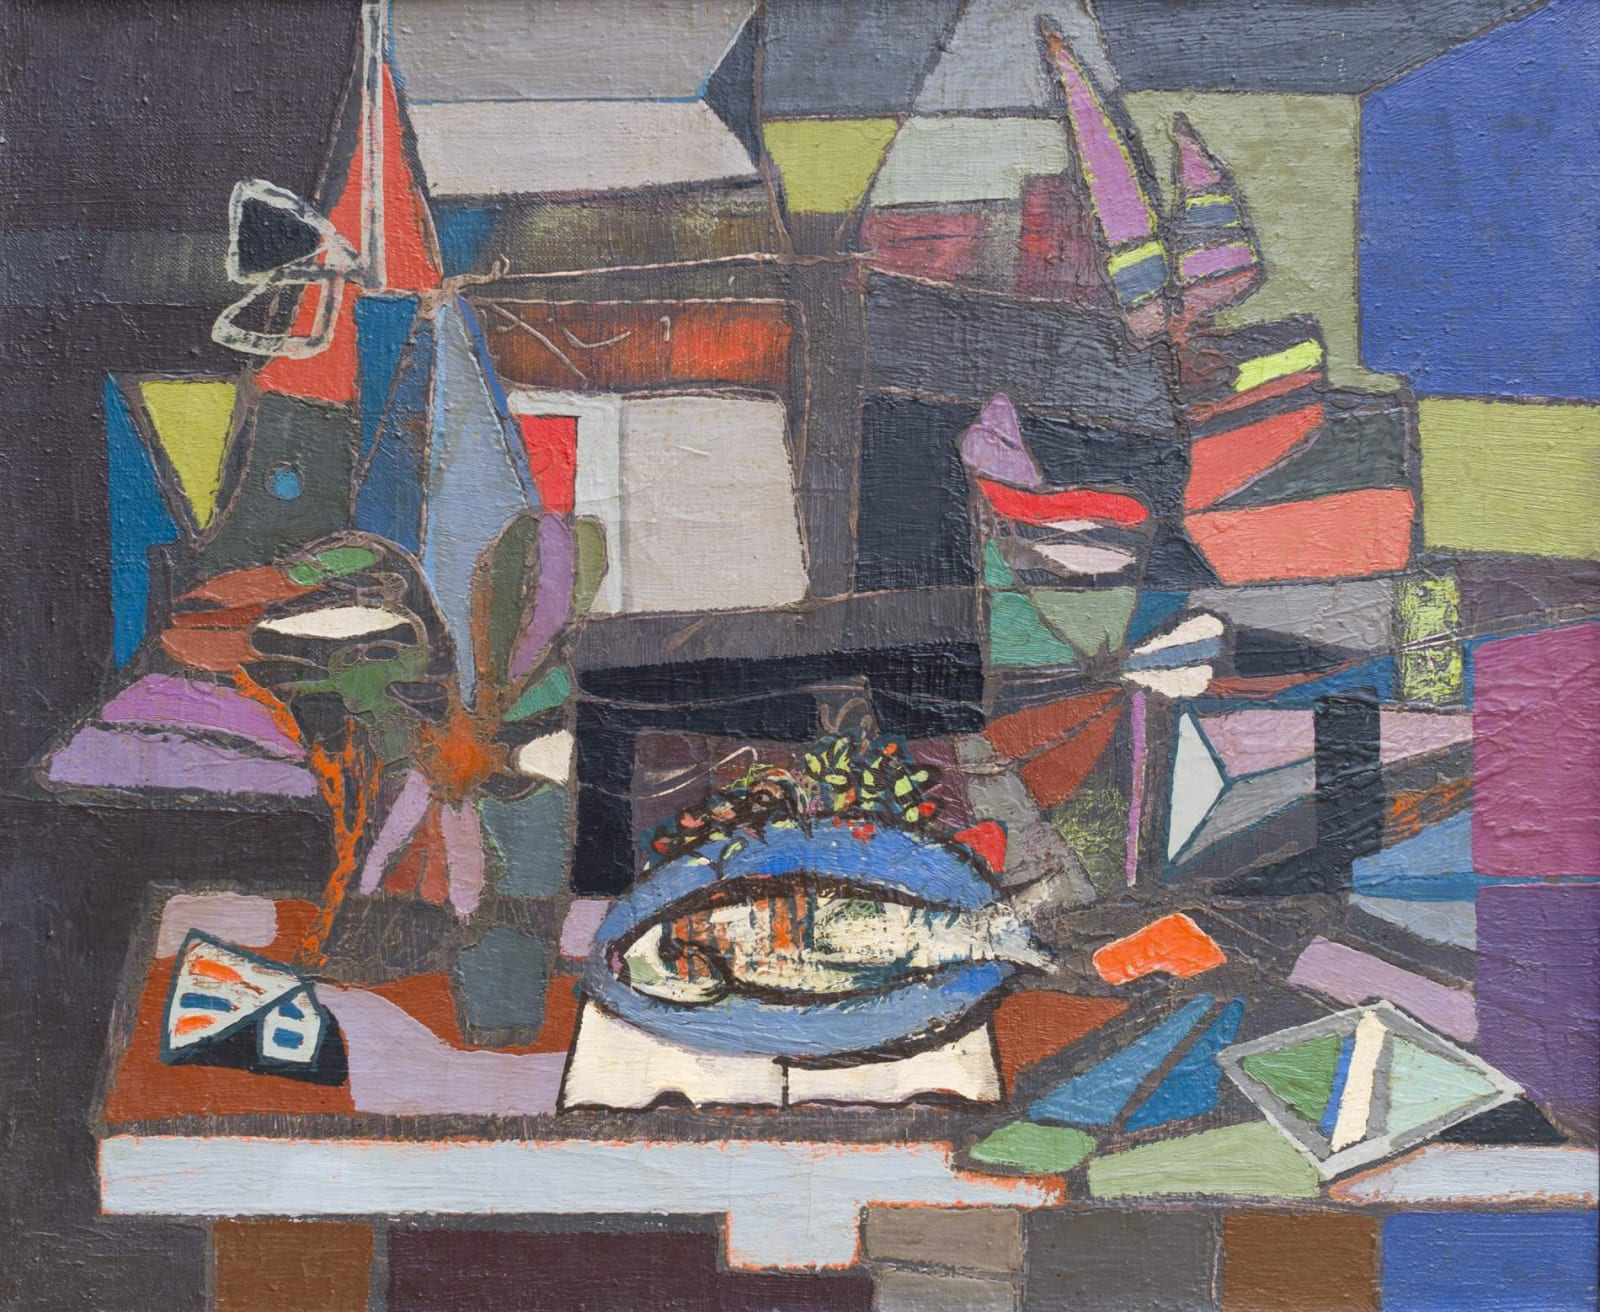 Jankel Adler (1895-1949) Composition with Fish 1940s Oil on canvas 63 x 75.5 cm Goldmark Gallery / Aukin Collection To see and discover more about this artist click here